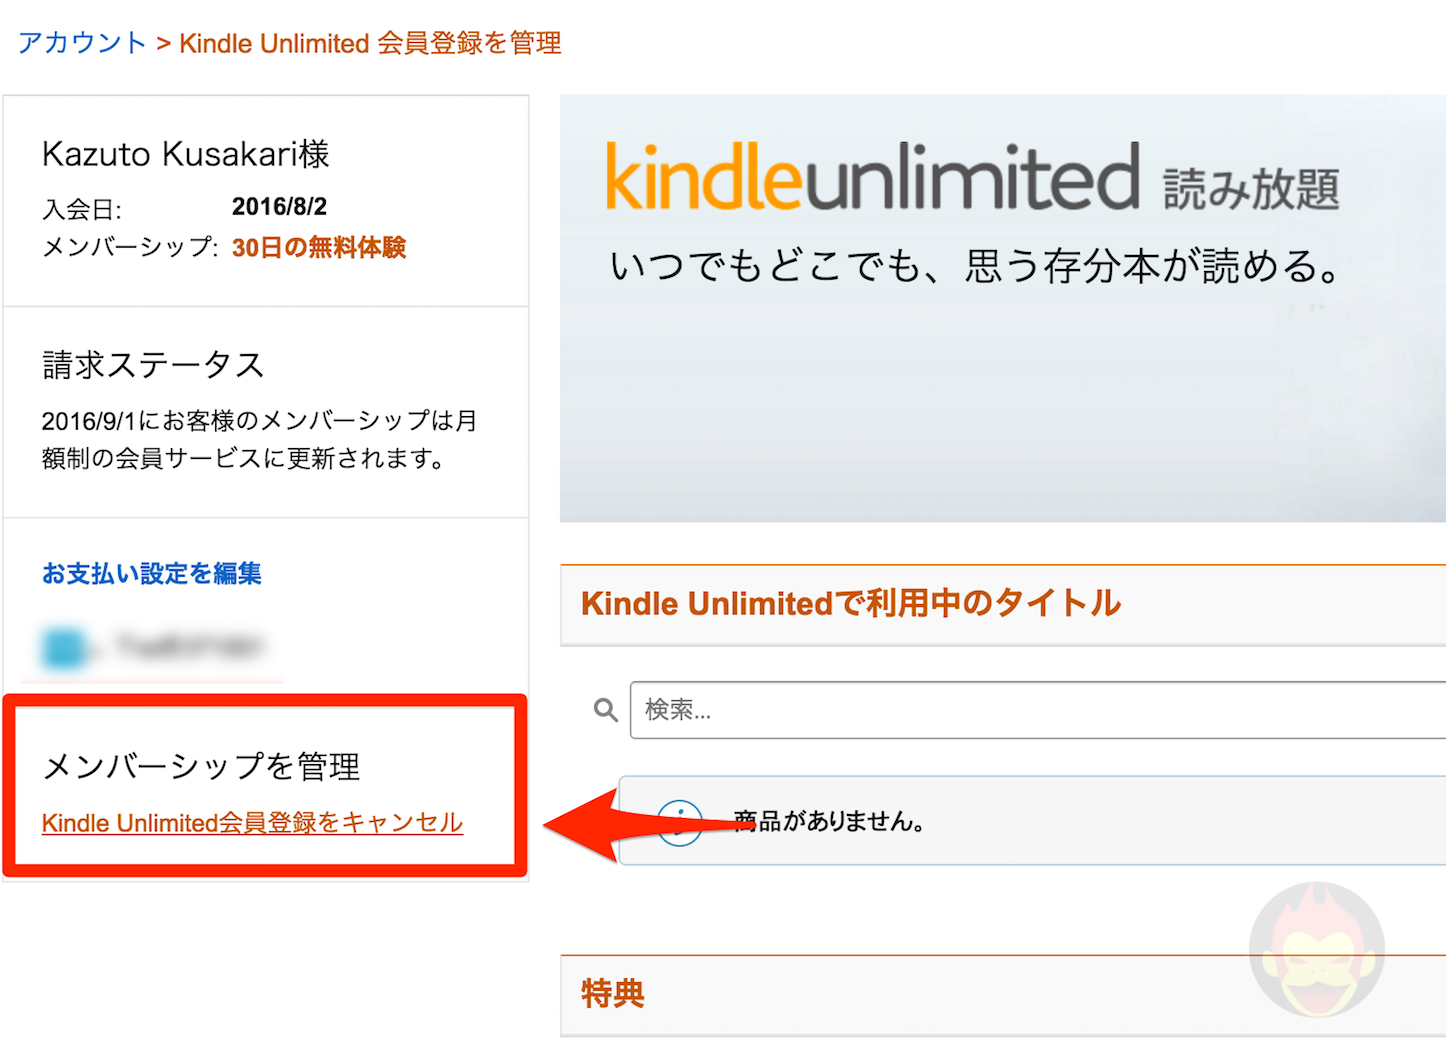 How to cancel kindle unlimited 2